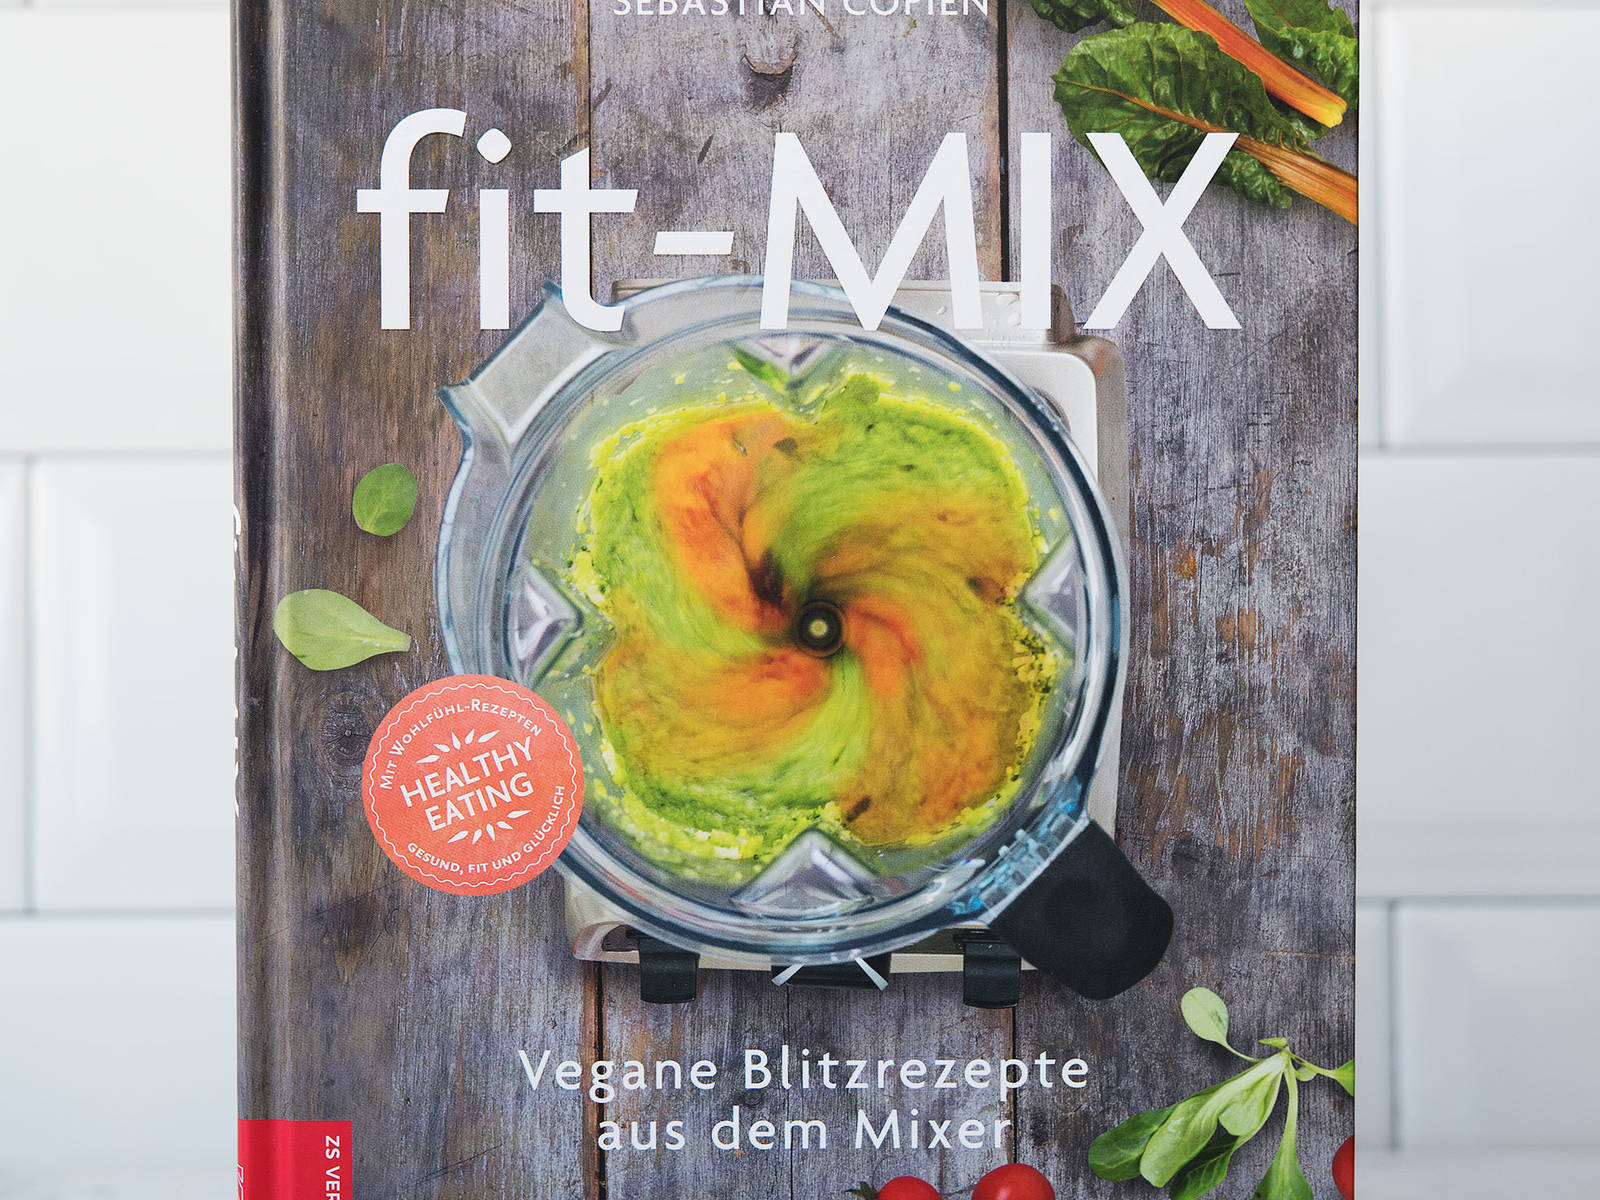 "This and many more quick recipes can be found in Sebastian Copien´s cookbook ""Fit-Mix"" (ZS Verlag)."